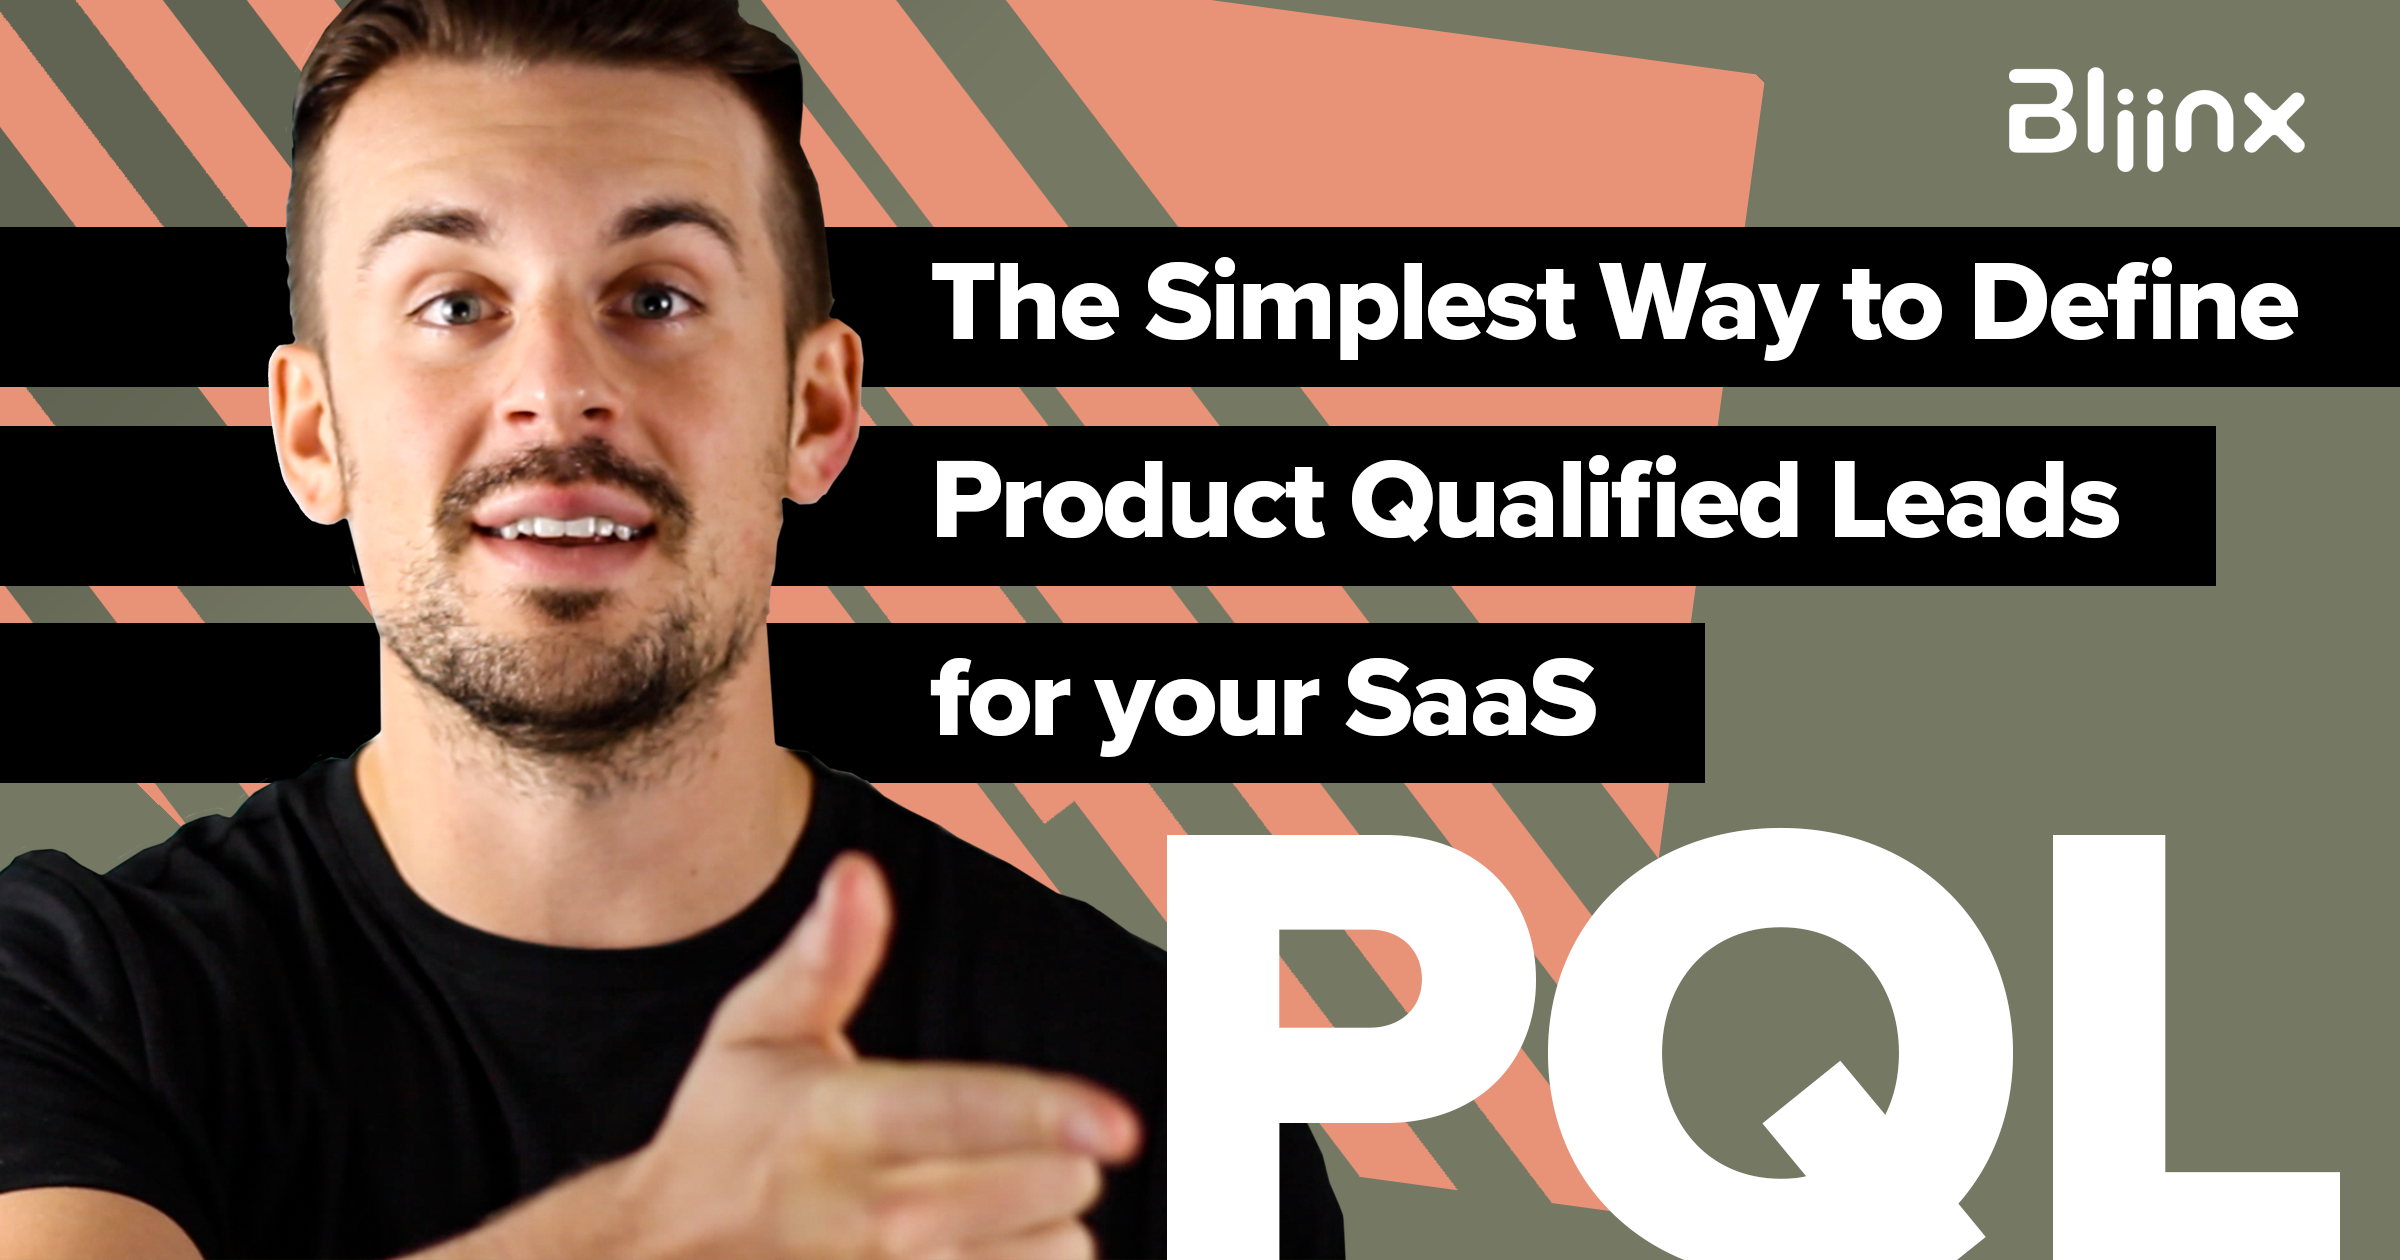 Easiest way to define Product Qualified Leads (PQLs)